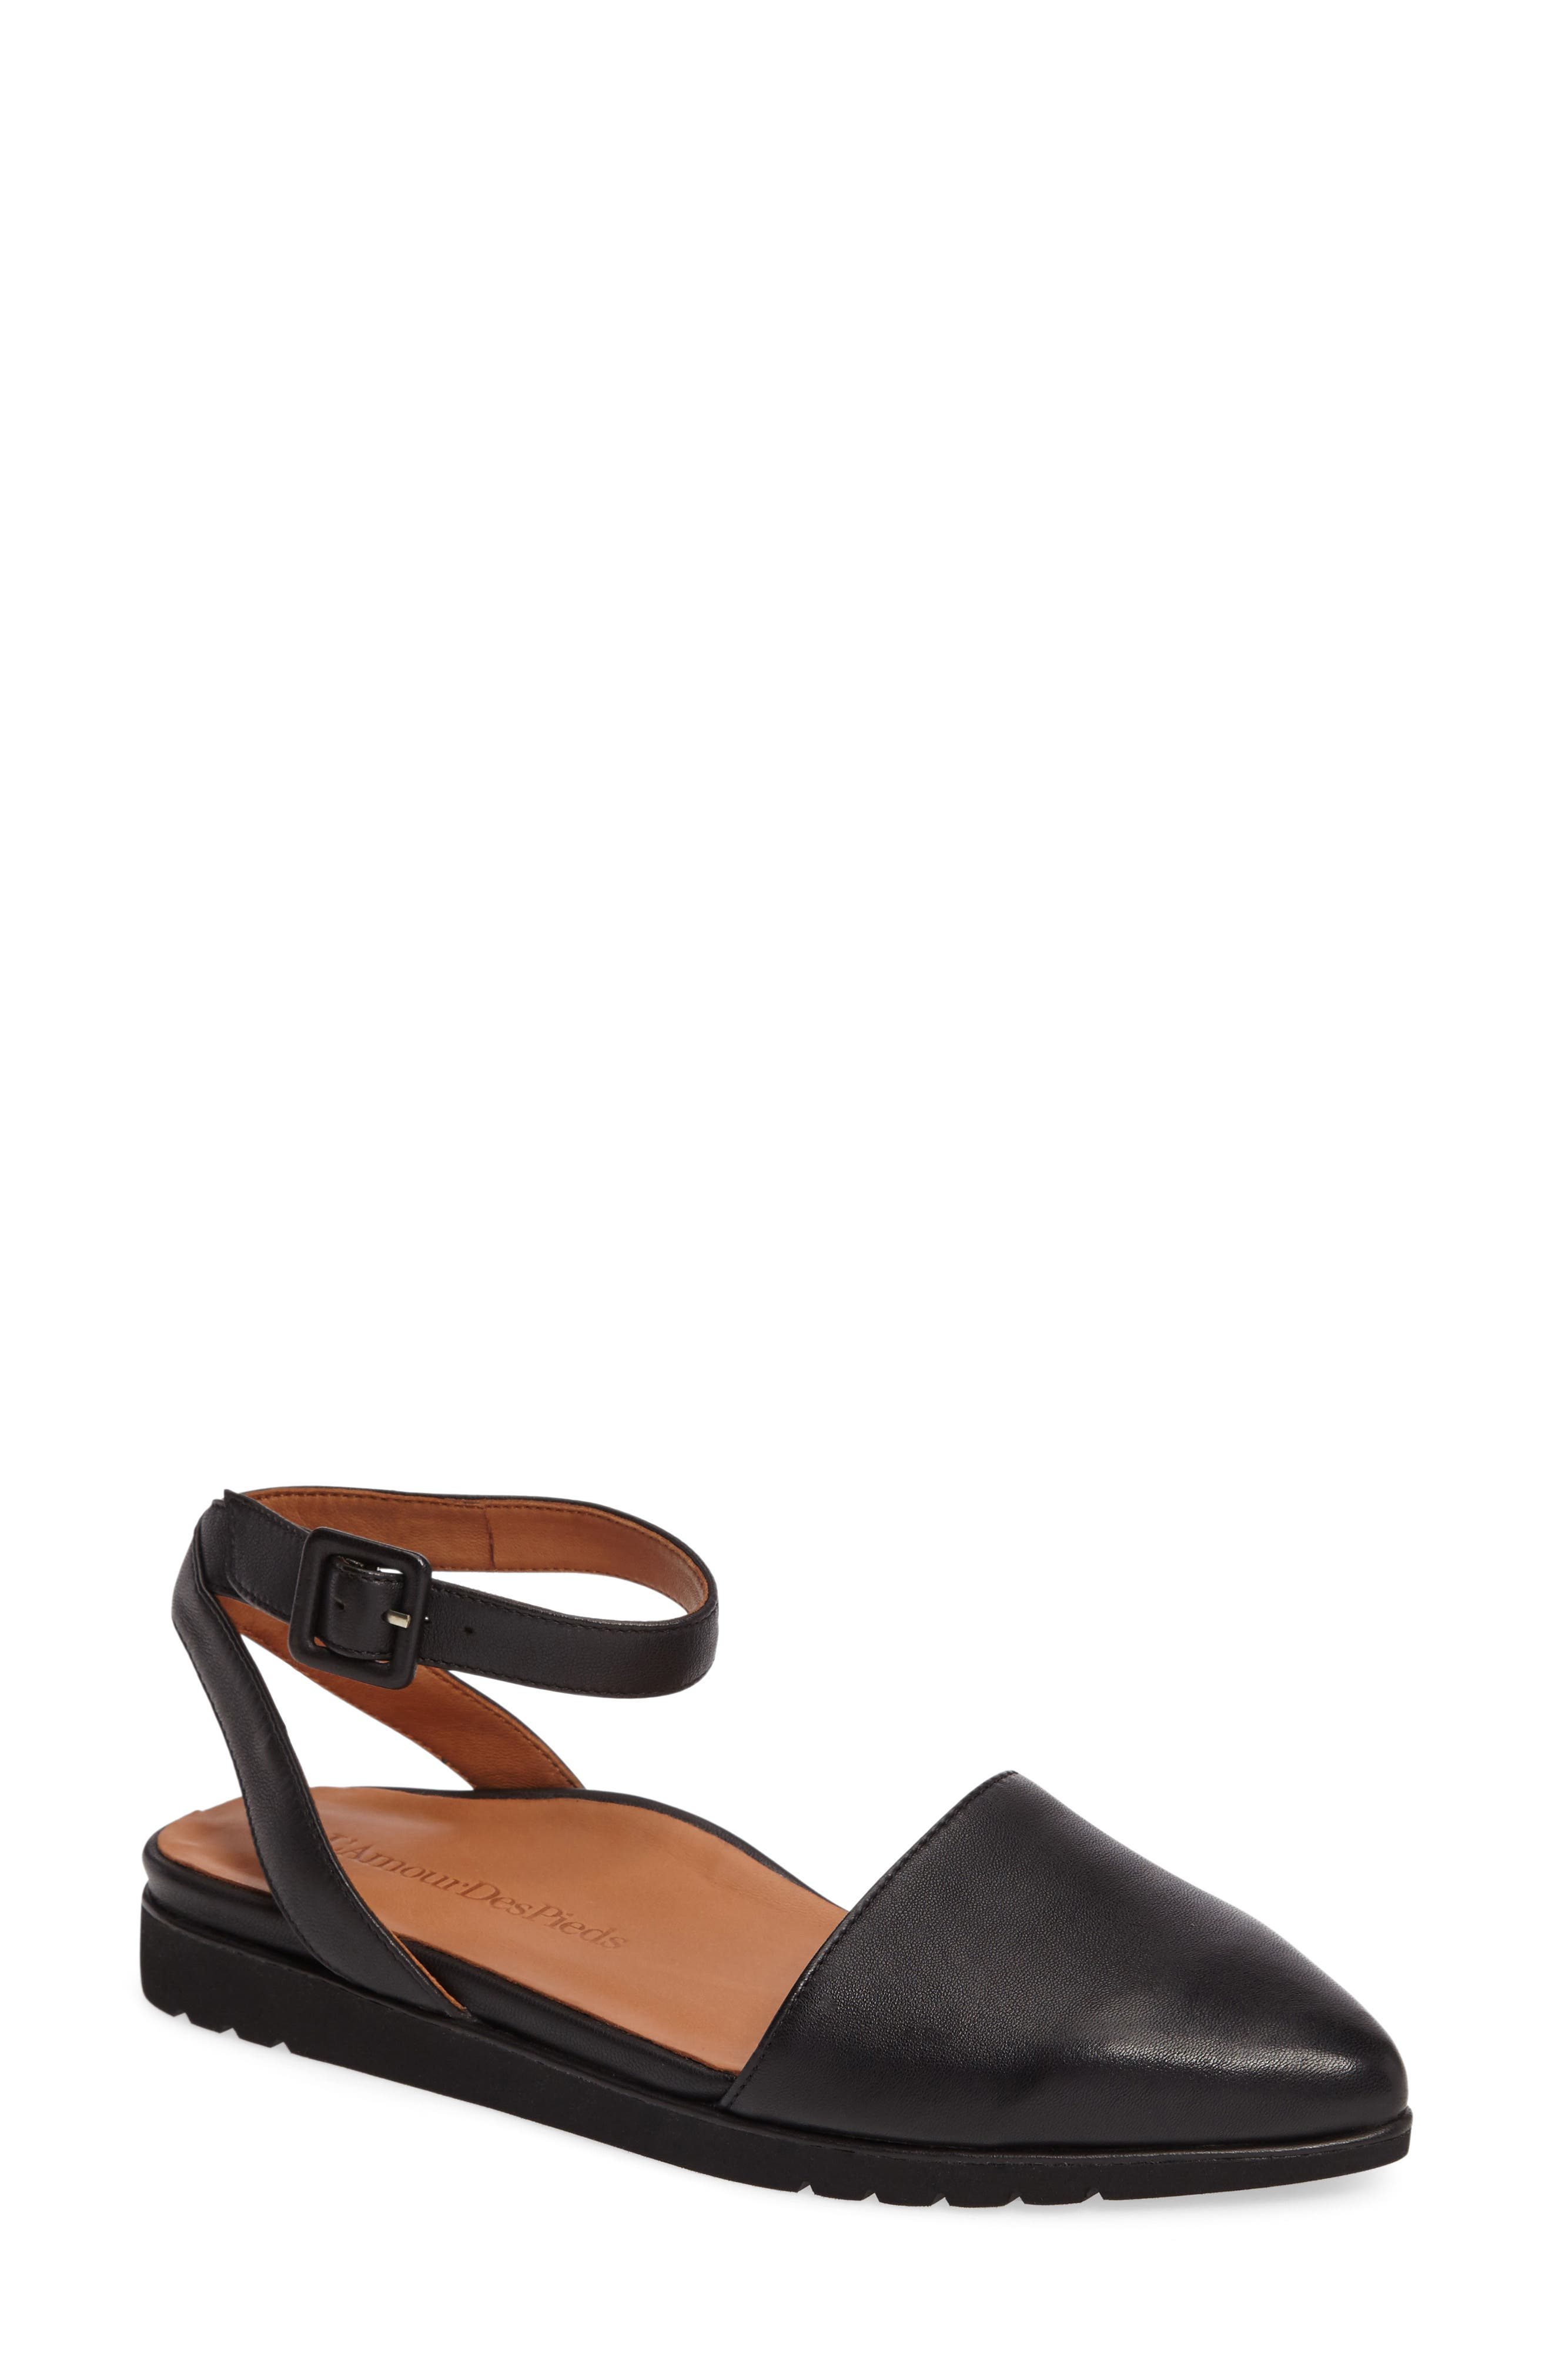 Madolen Strappy Flat,                             Main thumbnail 1, color,                             Black Leather